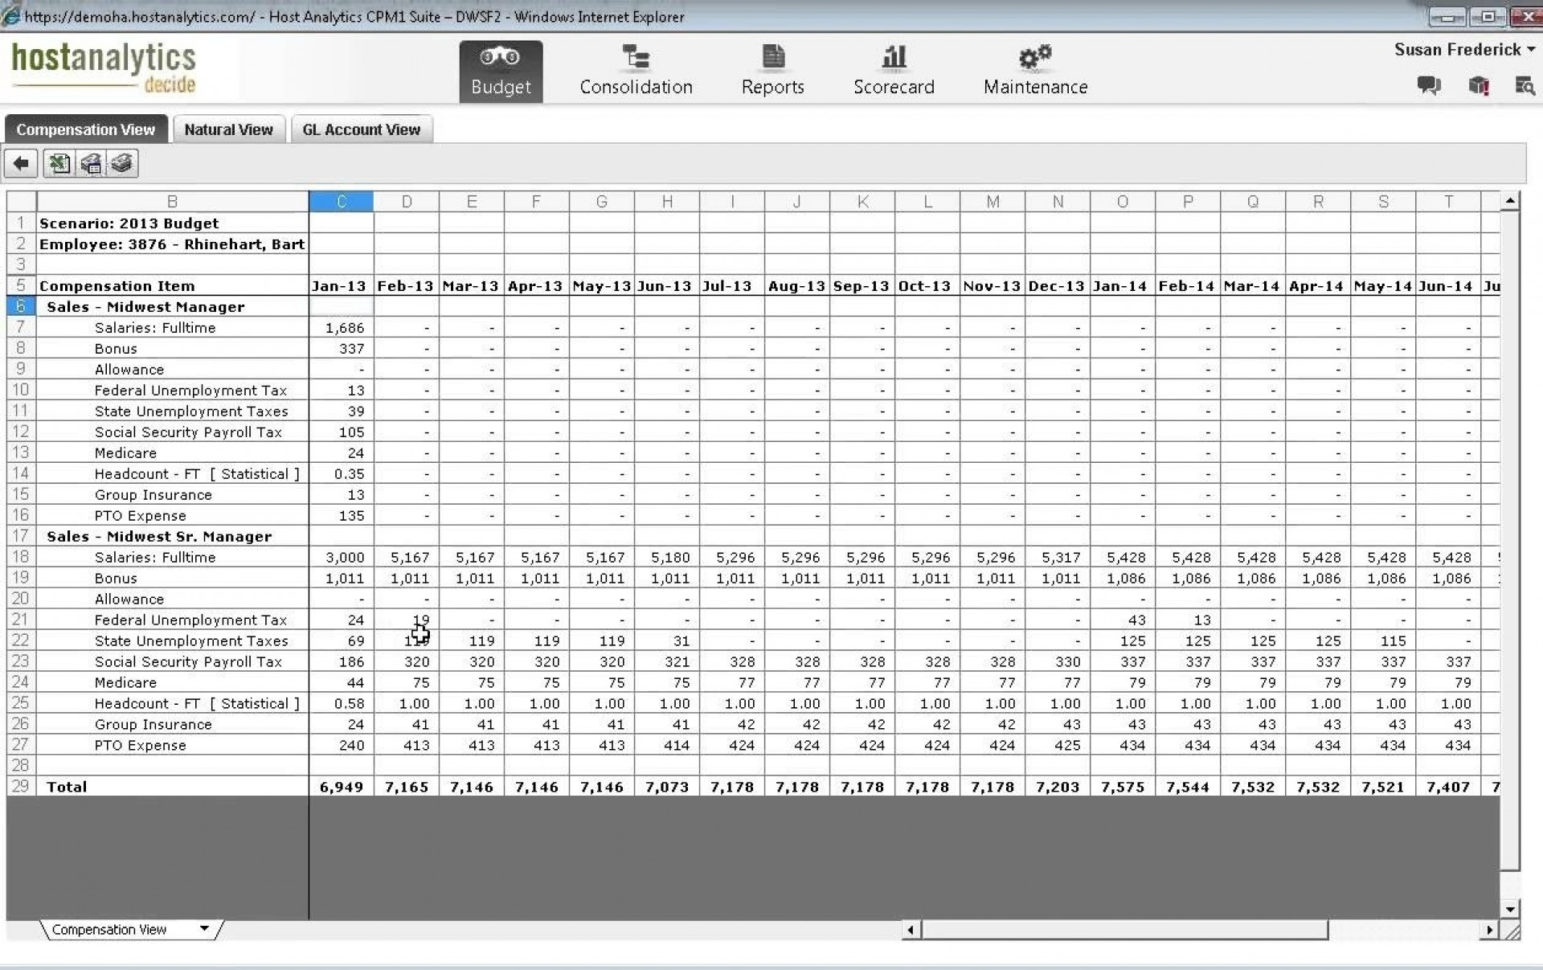 Workforce Management Excel Spreadsheet With 005 Workforcening Template Xls Management Excel Spreadsheet